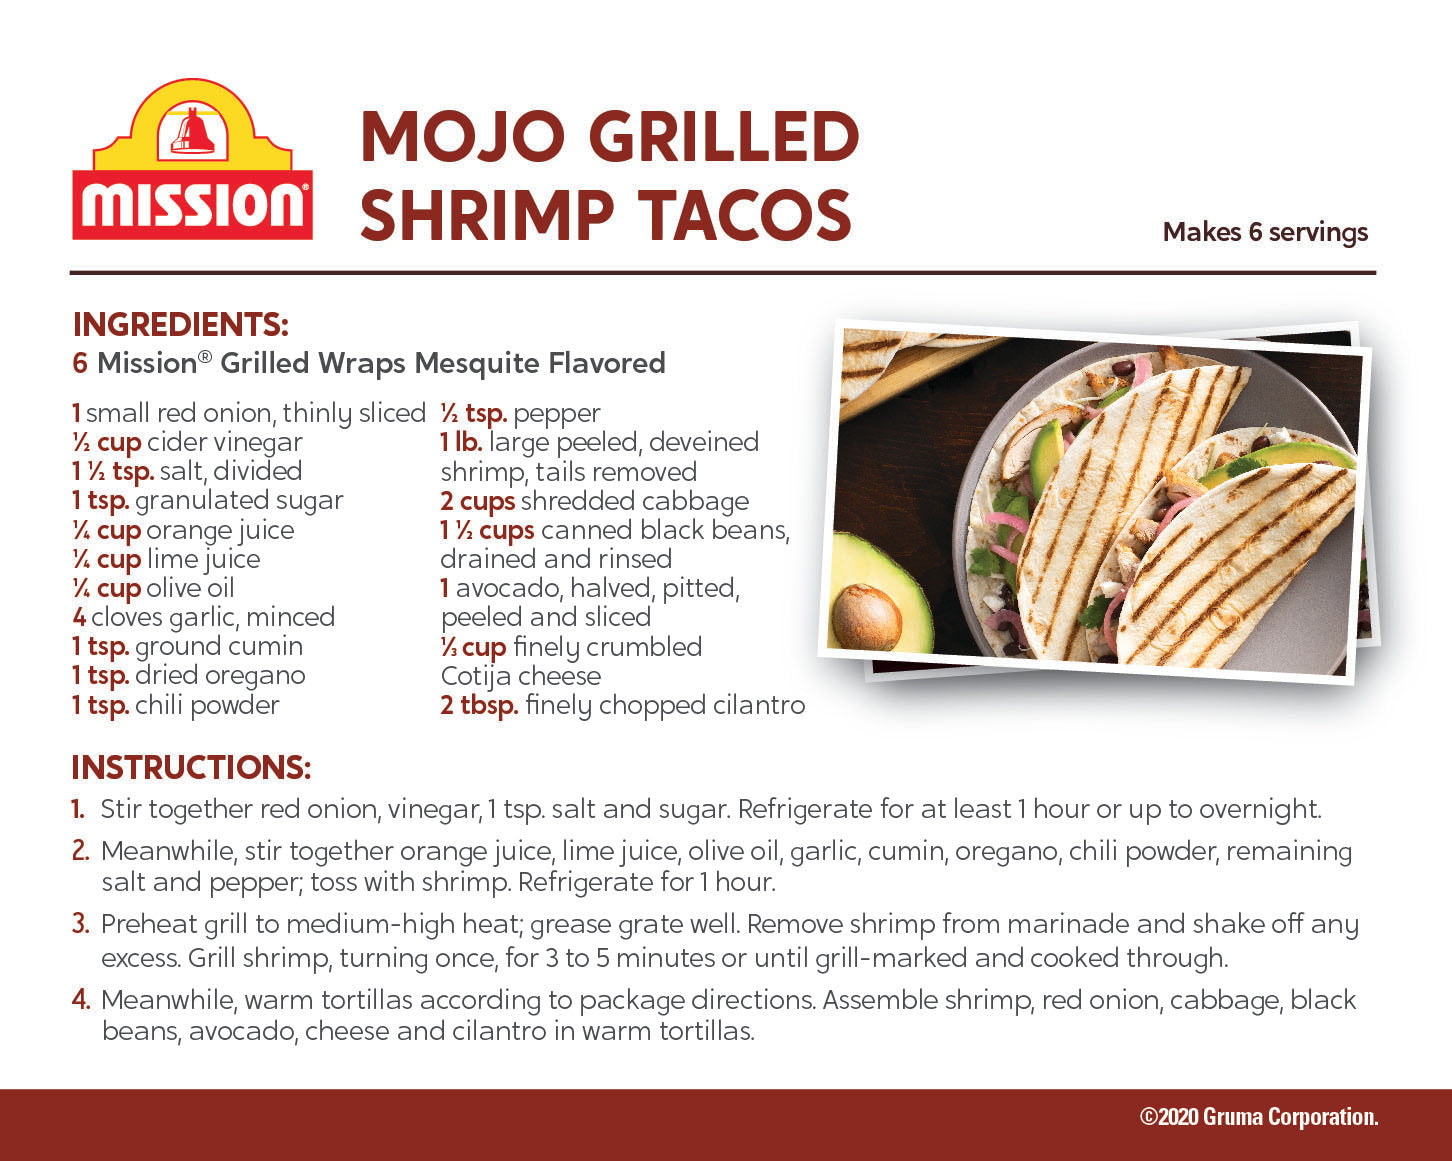 Mojo Grilled Shrimp Recipe